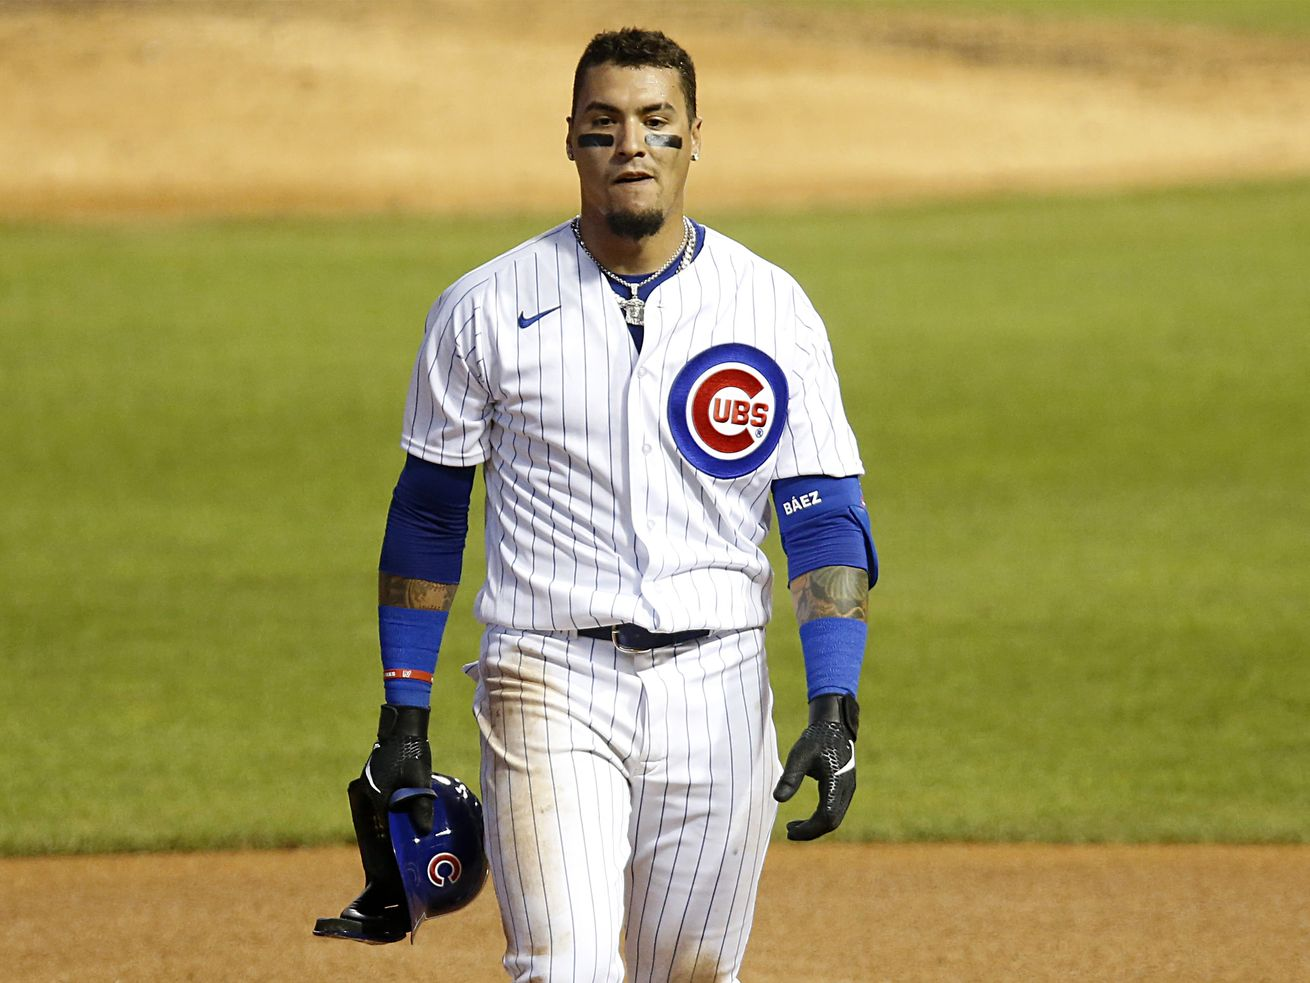 The Cubs' 14-7 record is so fine, it's almost like they're not hitting .229